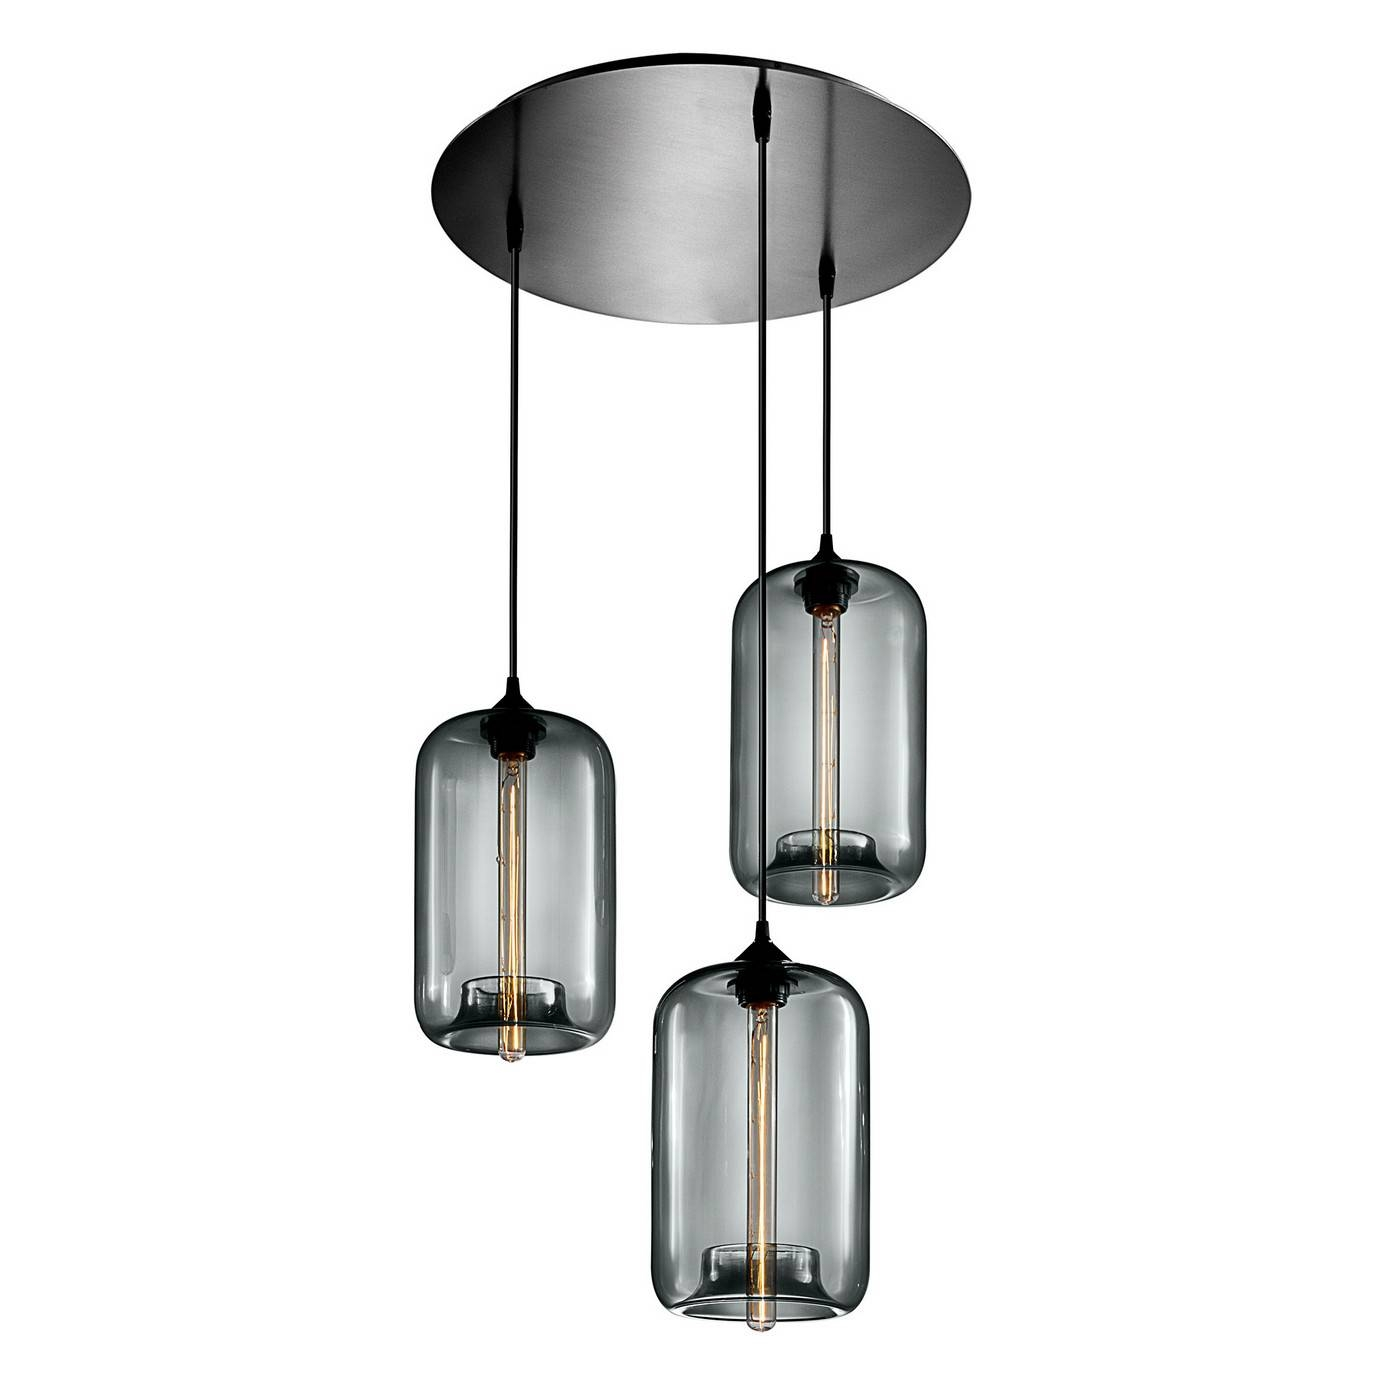 15 Collection Of Modern Pendant Lights Sydney